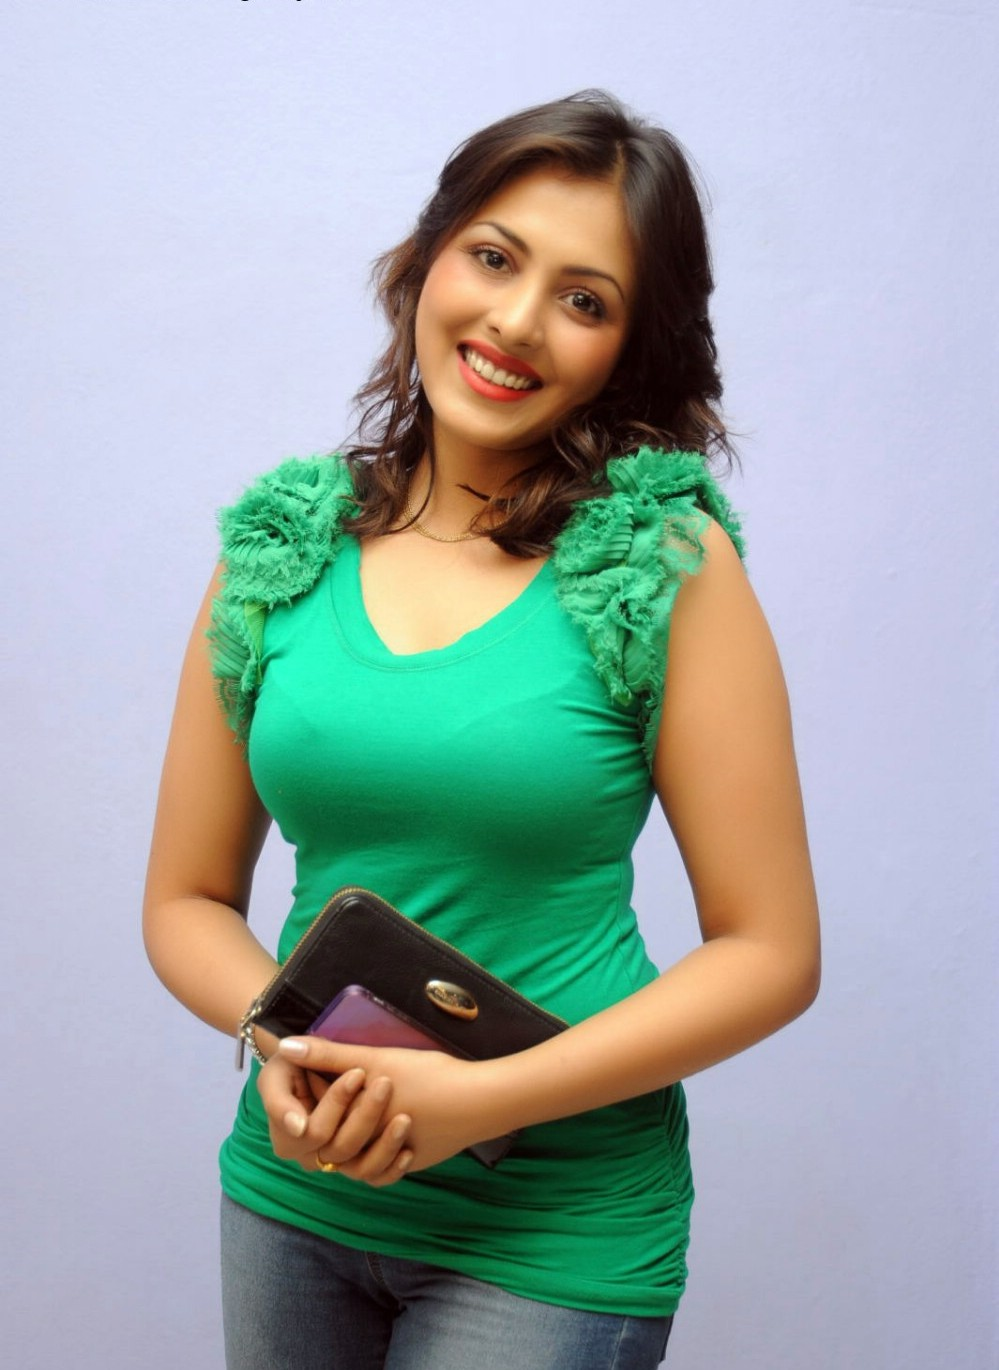 Madhu Shalini Smiling Photoshoot Stills In Green Top Blue Jeans